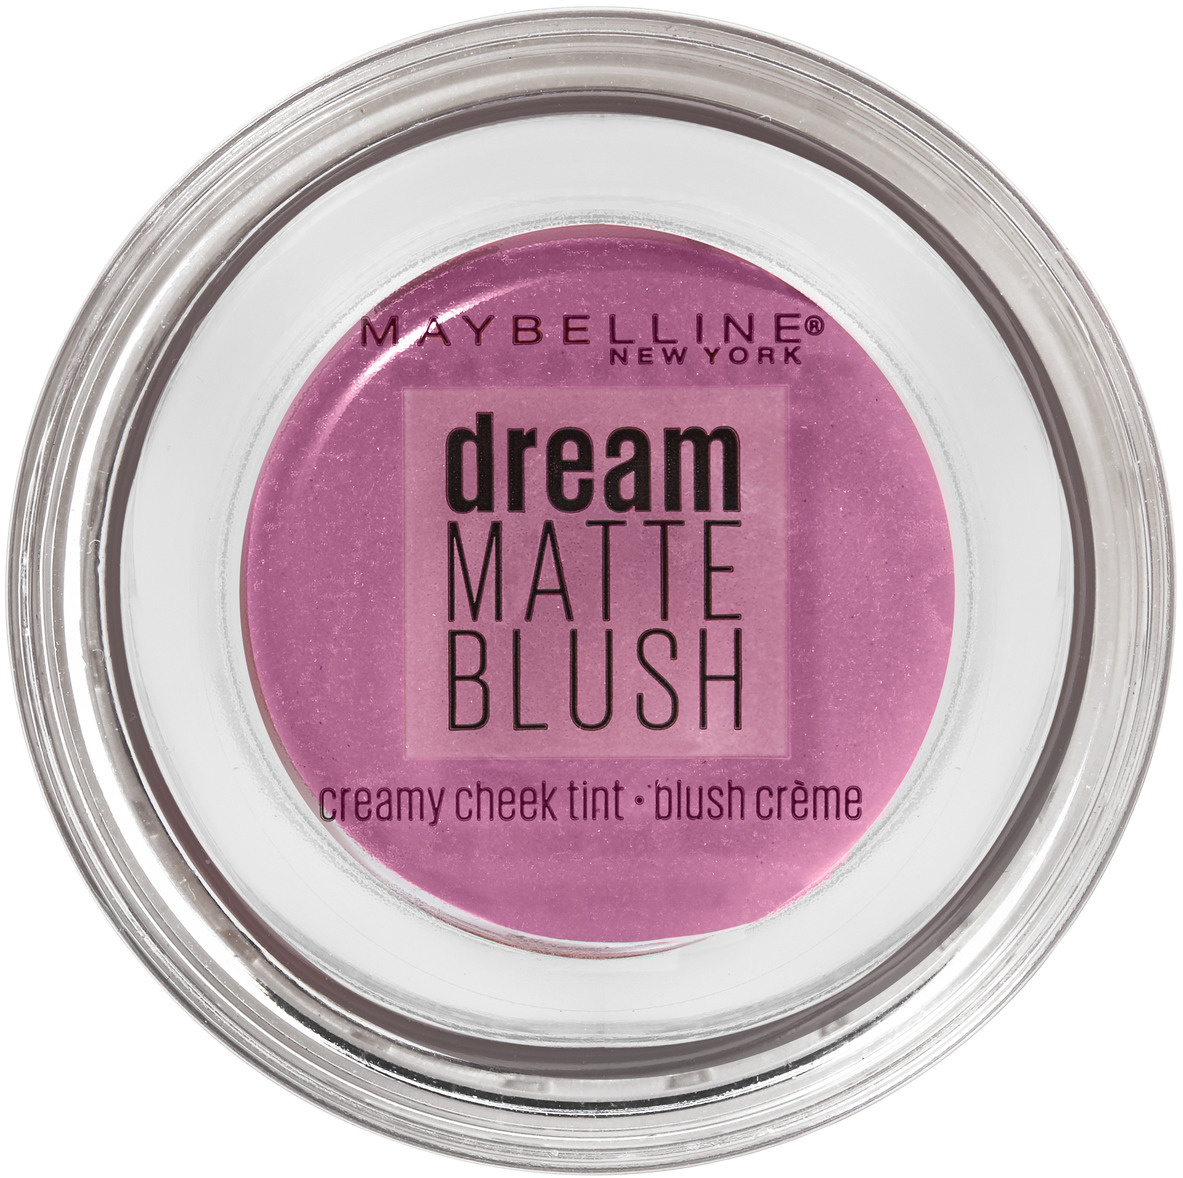 Румяна Maybelline New York Face Studio Dream Matte Blush, оттенок 40, розовато-лиловый  #1